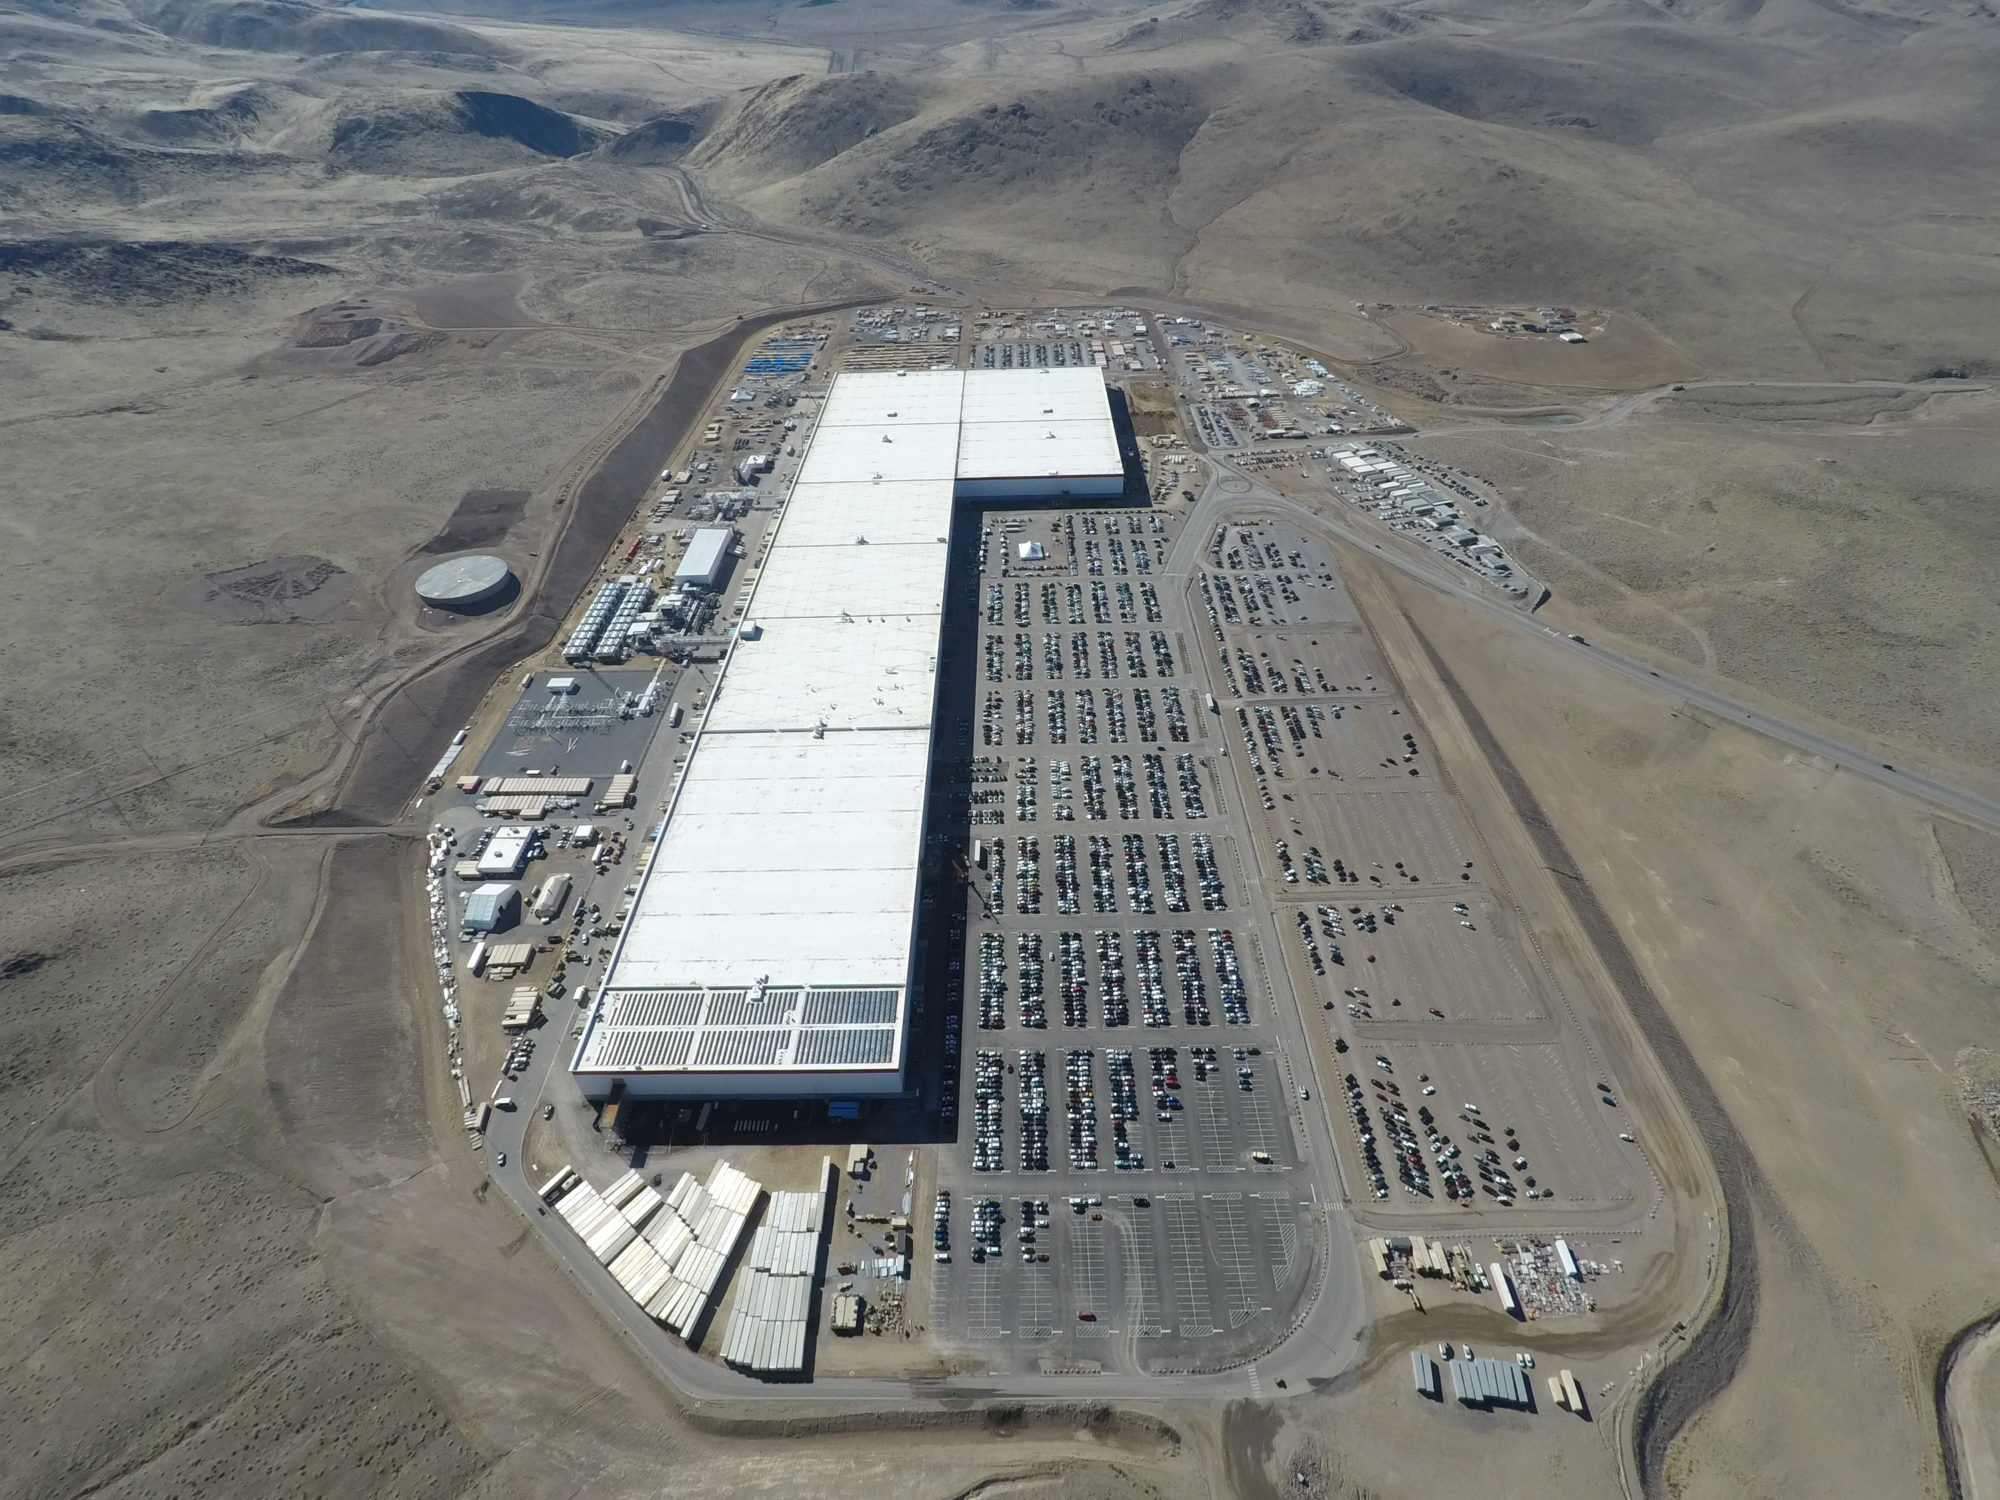 Tesla GIgafactory 1 as of March 12, 2018 (4) [Credit: Teslarati]